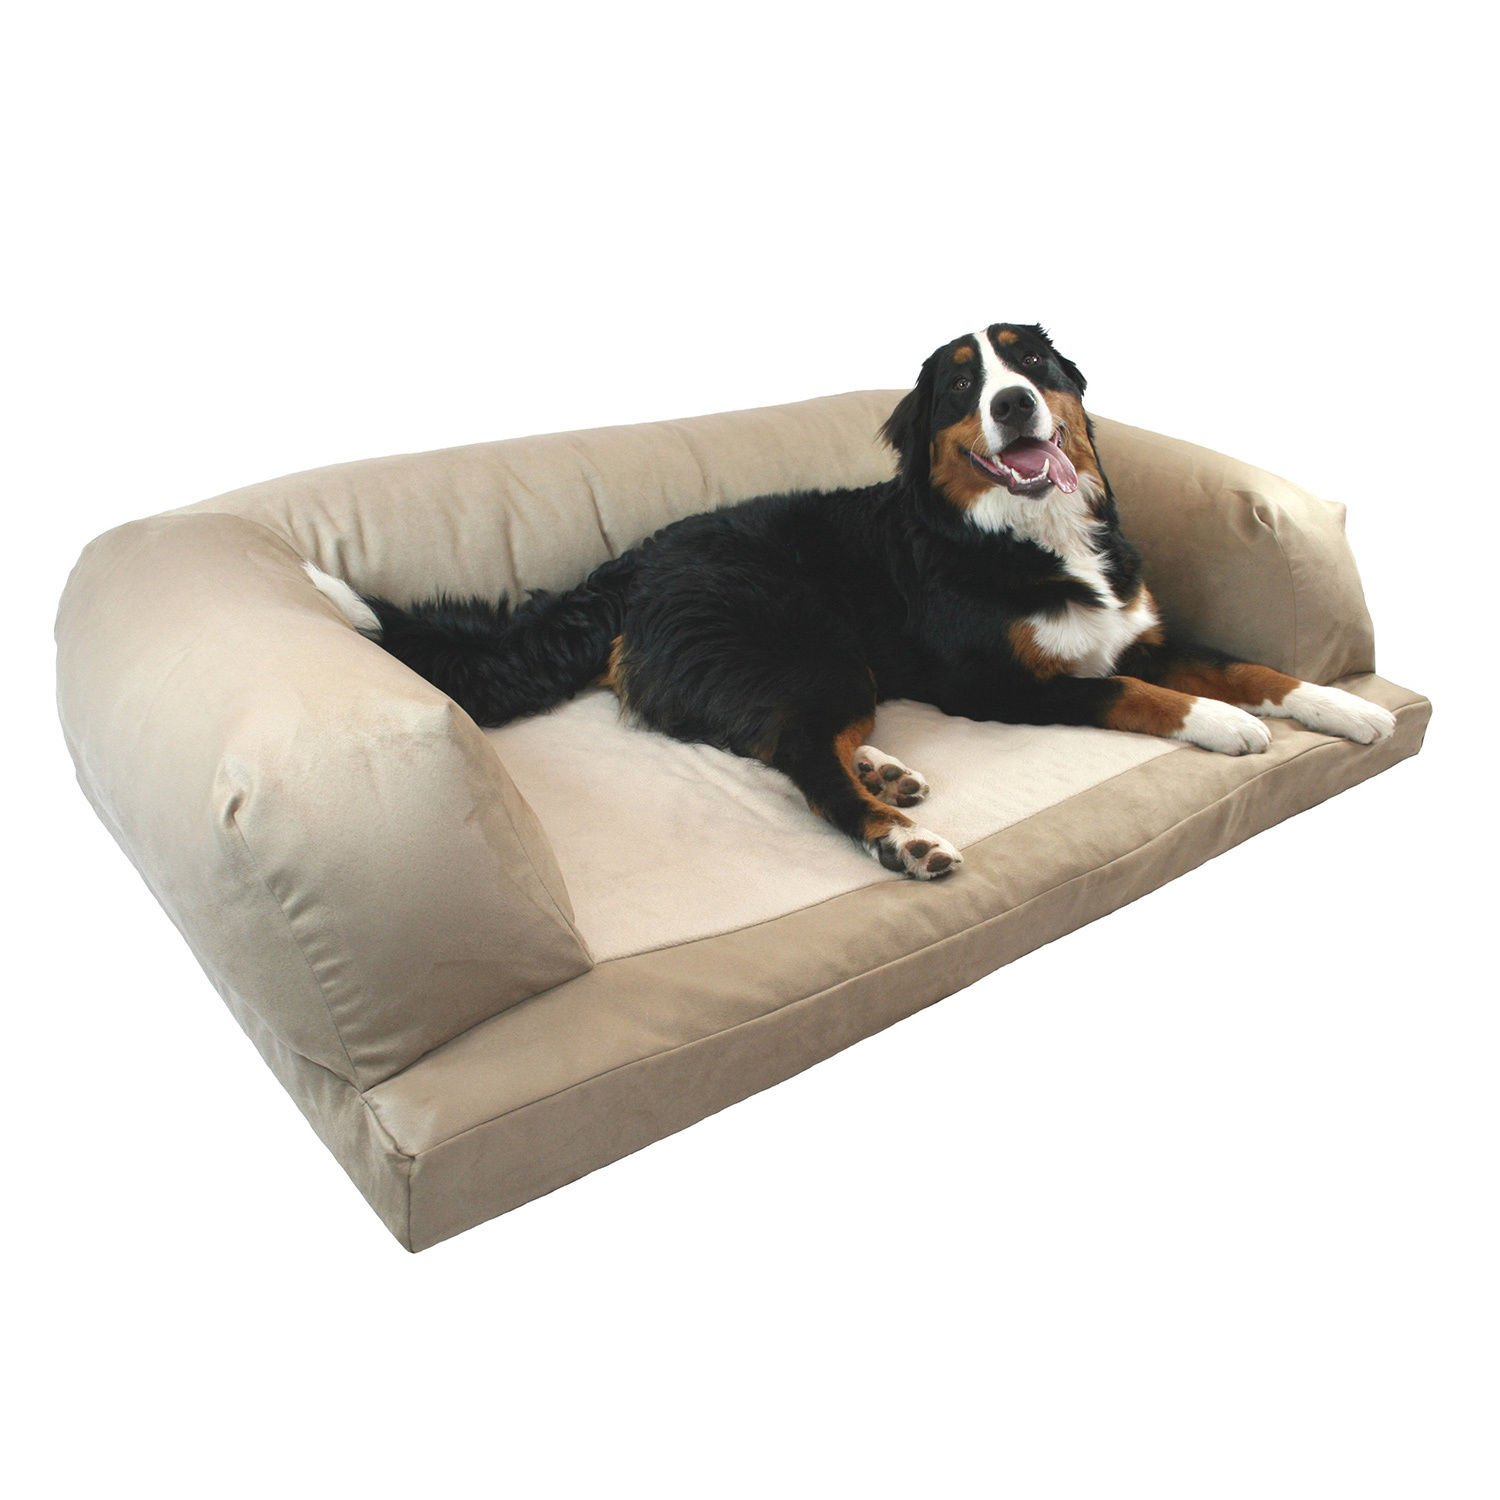 Extra large orthopedic dog beds best price - Amazon Com Dog Bed And Couch Extra Large Tan Baxter Orthopedic Foam Oversized Luxurious Comfort Guaranteed By Hidden Valley Pet Supplies